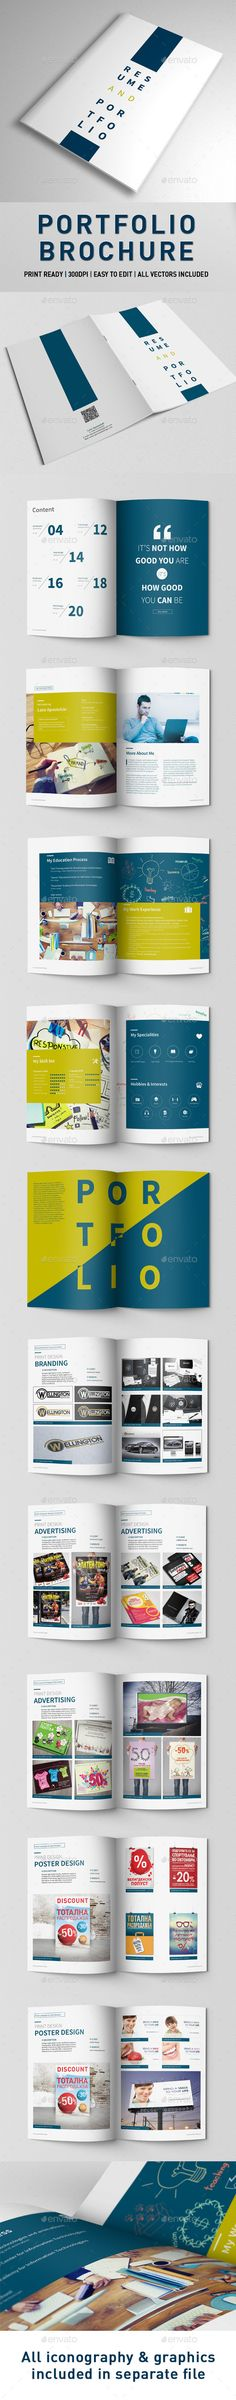 Portfolio Brochure Template #brochuretemplate Download: http://graphicriver.net/item/portfolio-brochure/9935095?ref=ksioks